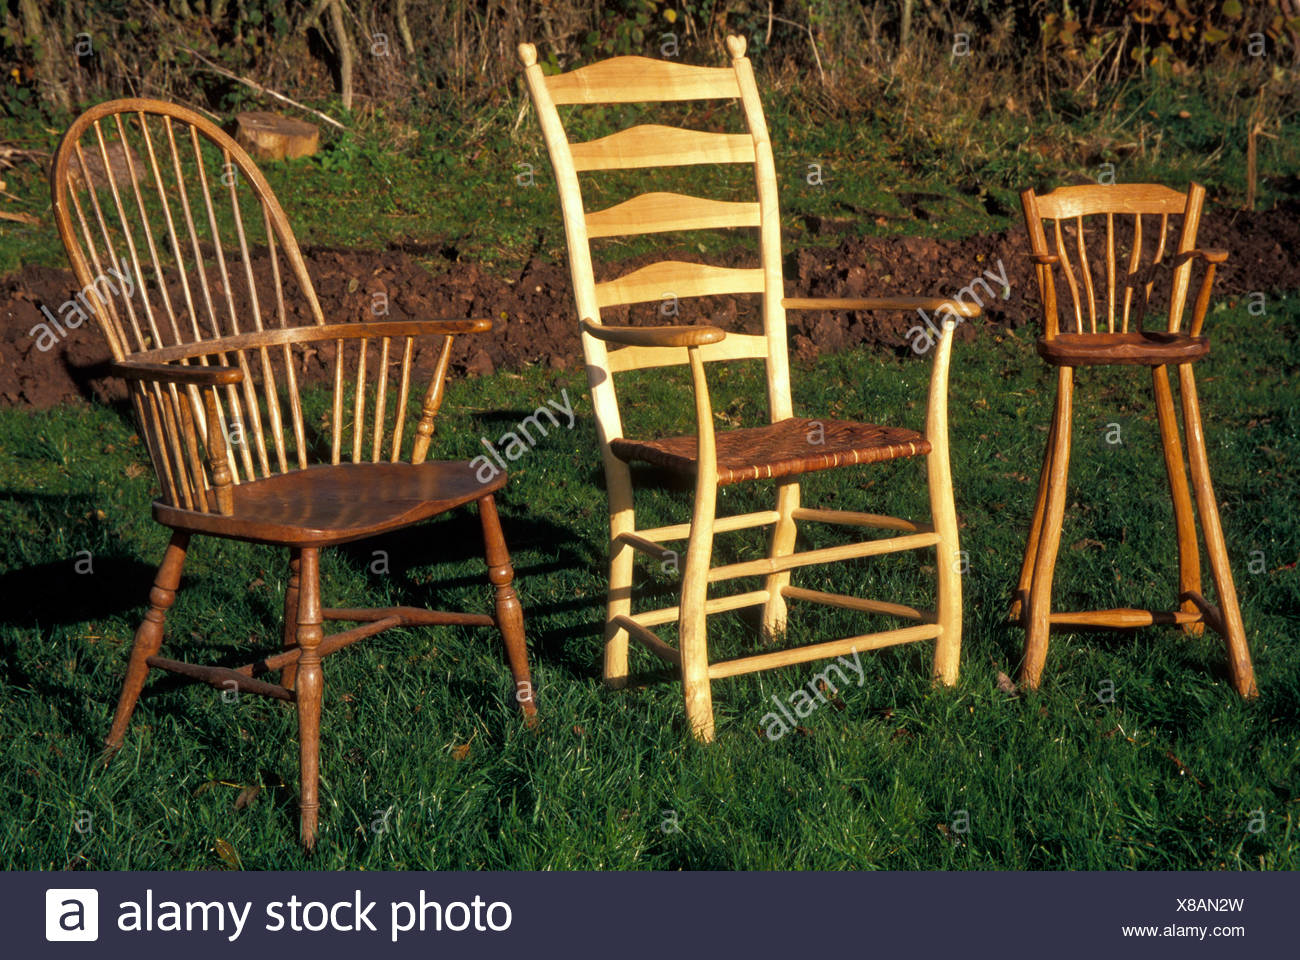 Windsor Chair Making Stock Photos Windsor Chair Making Stock